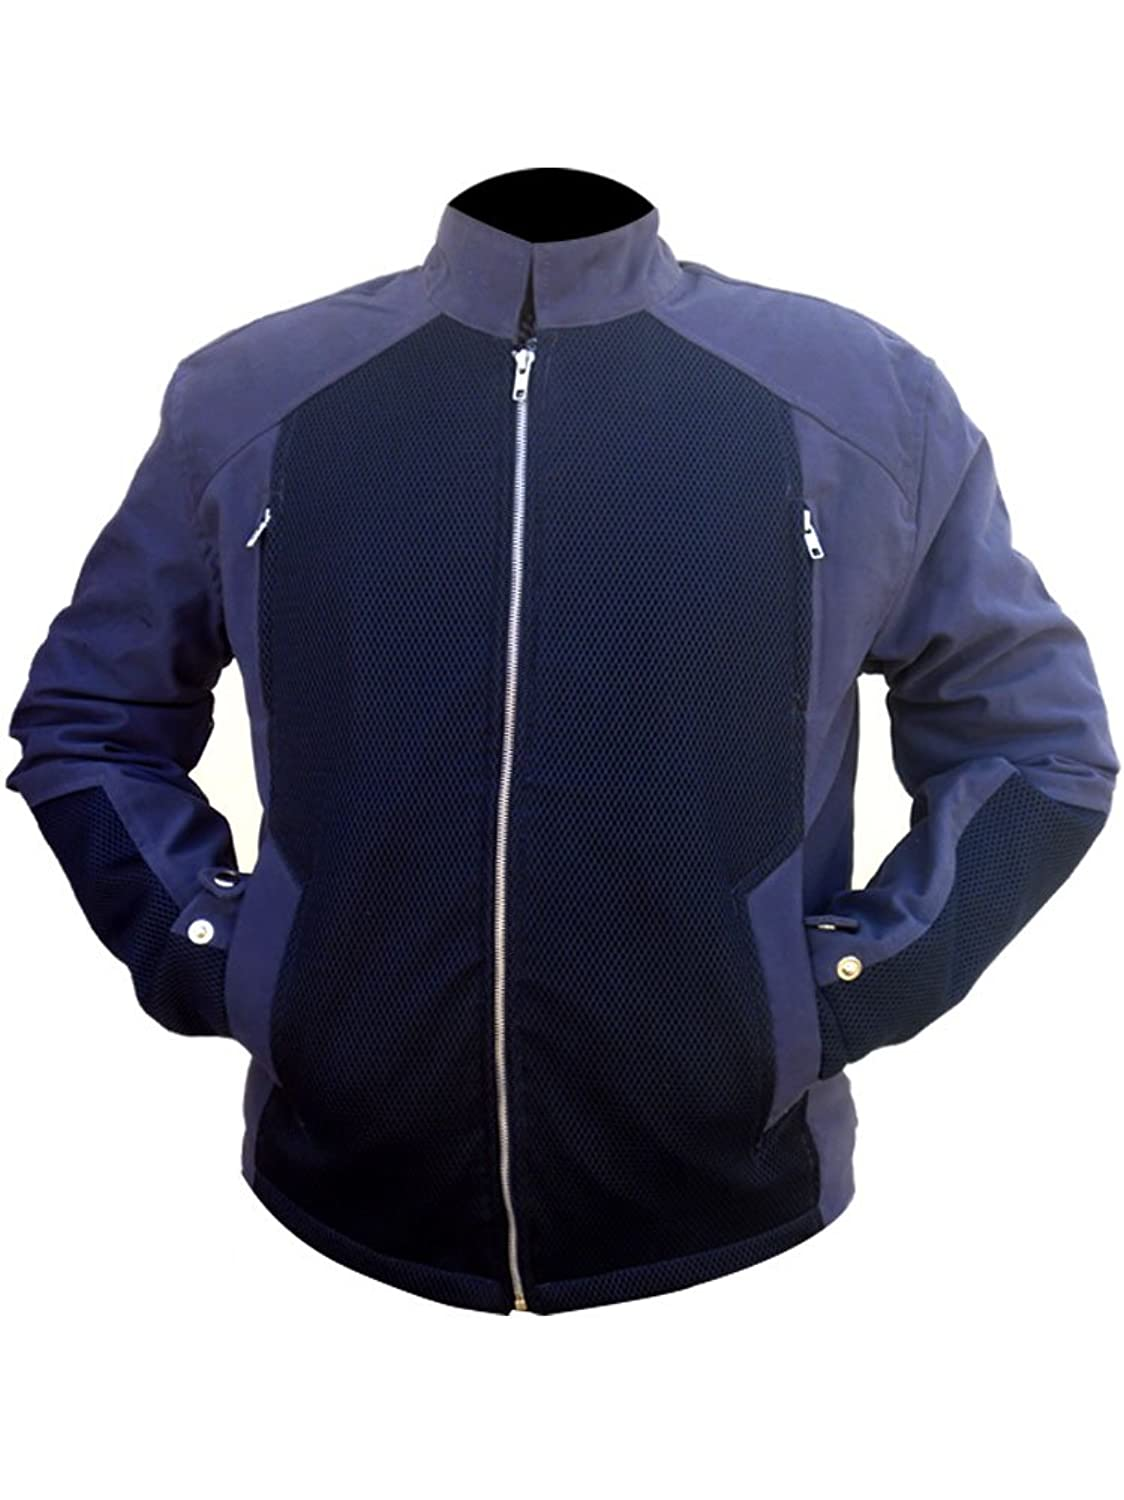 Captain America: Winter Soldier Steve Rogers Blue Fabric Jacket - DeluxeAdultCostumes.com